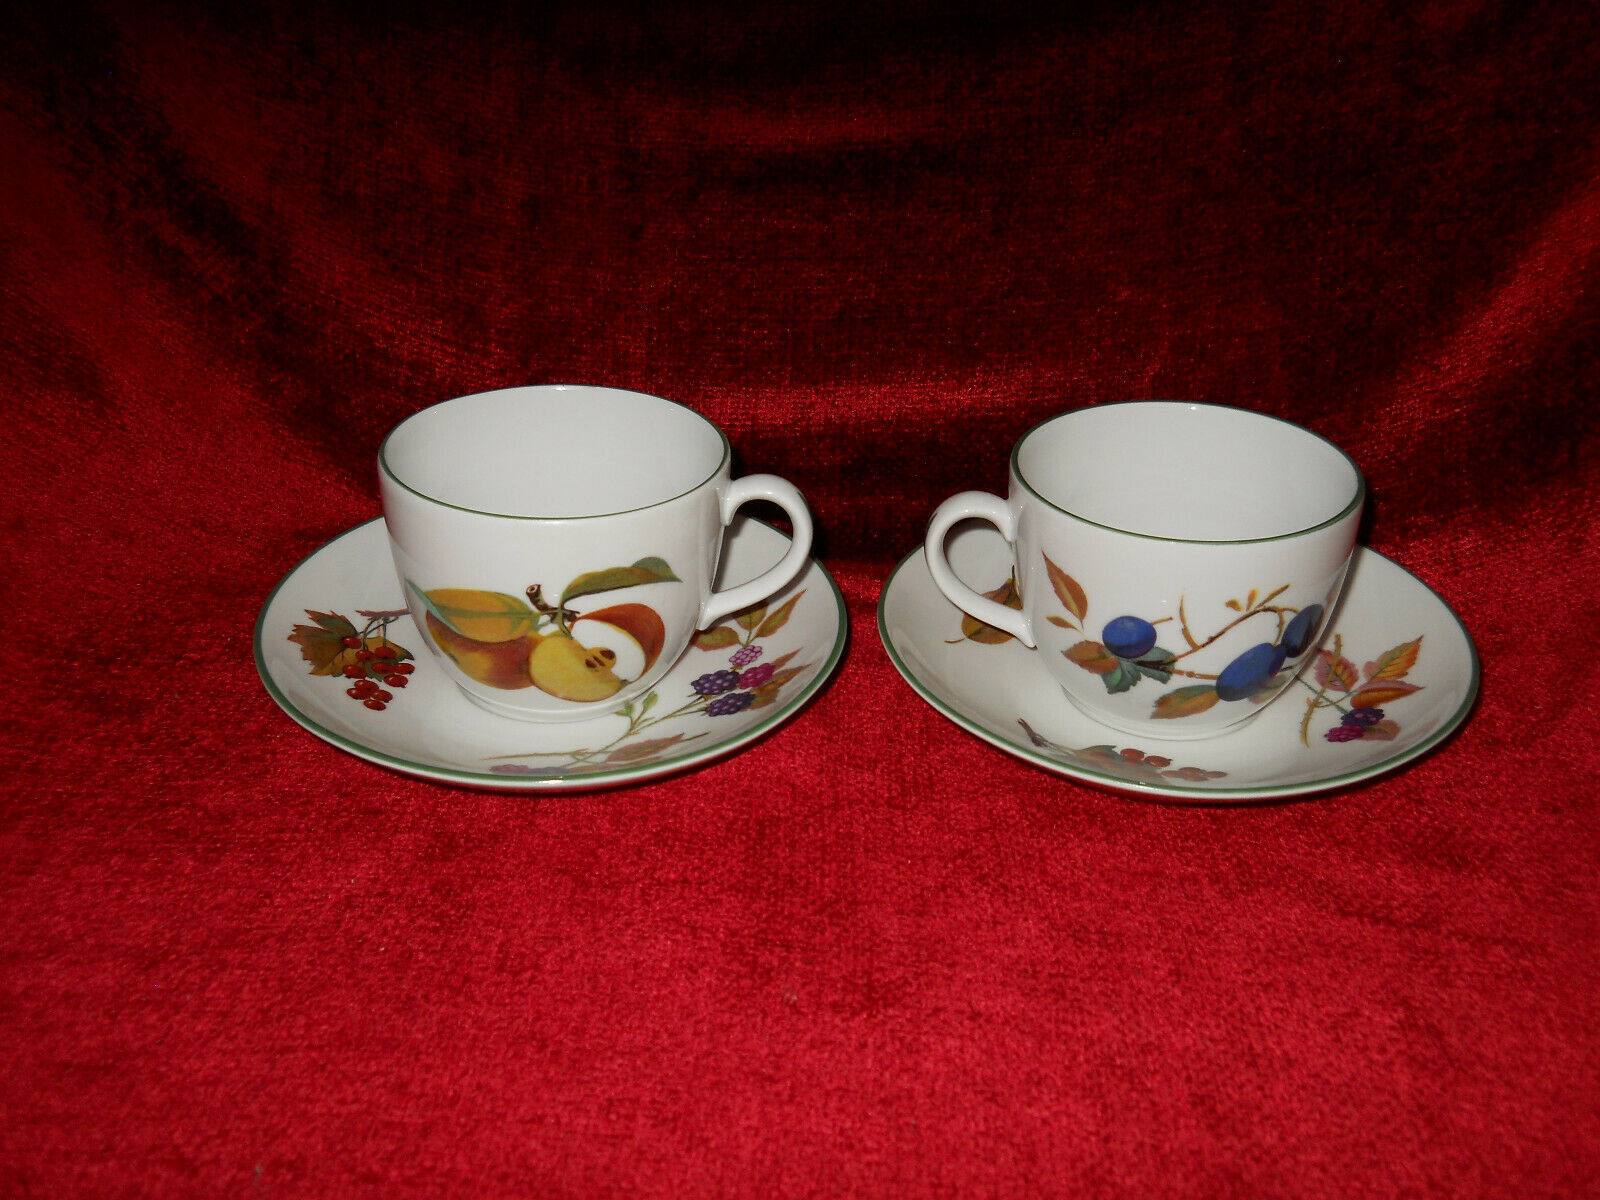 Royal Worcester Evesham Vale set of 2 cups and saucer